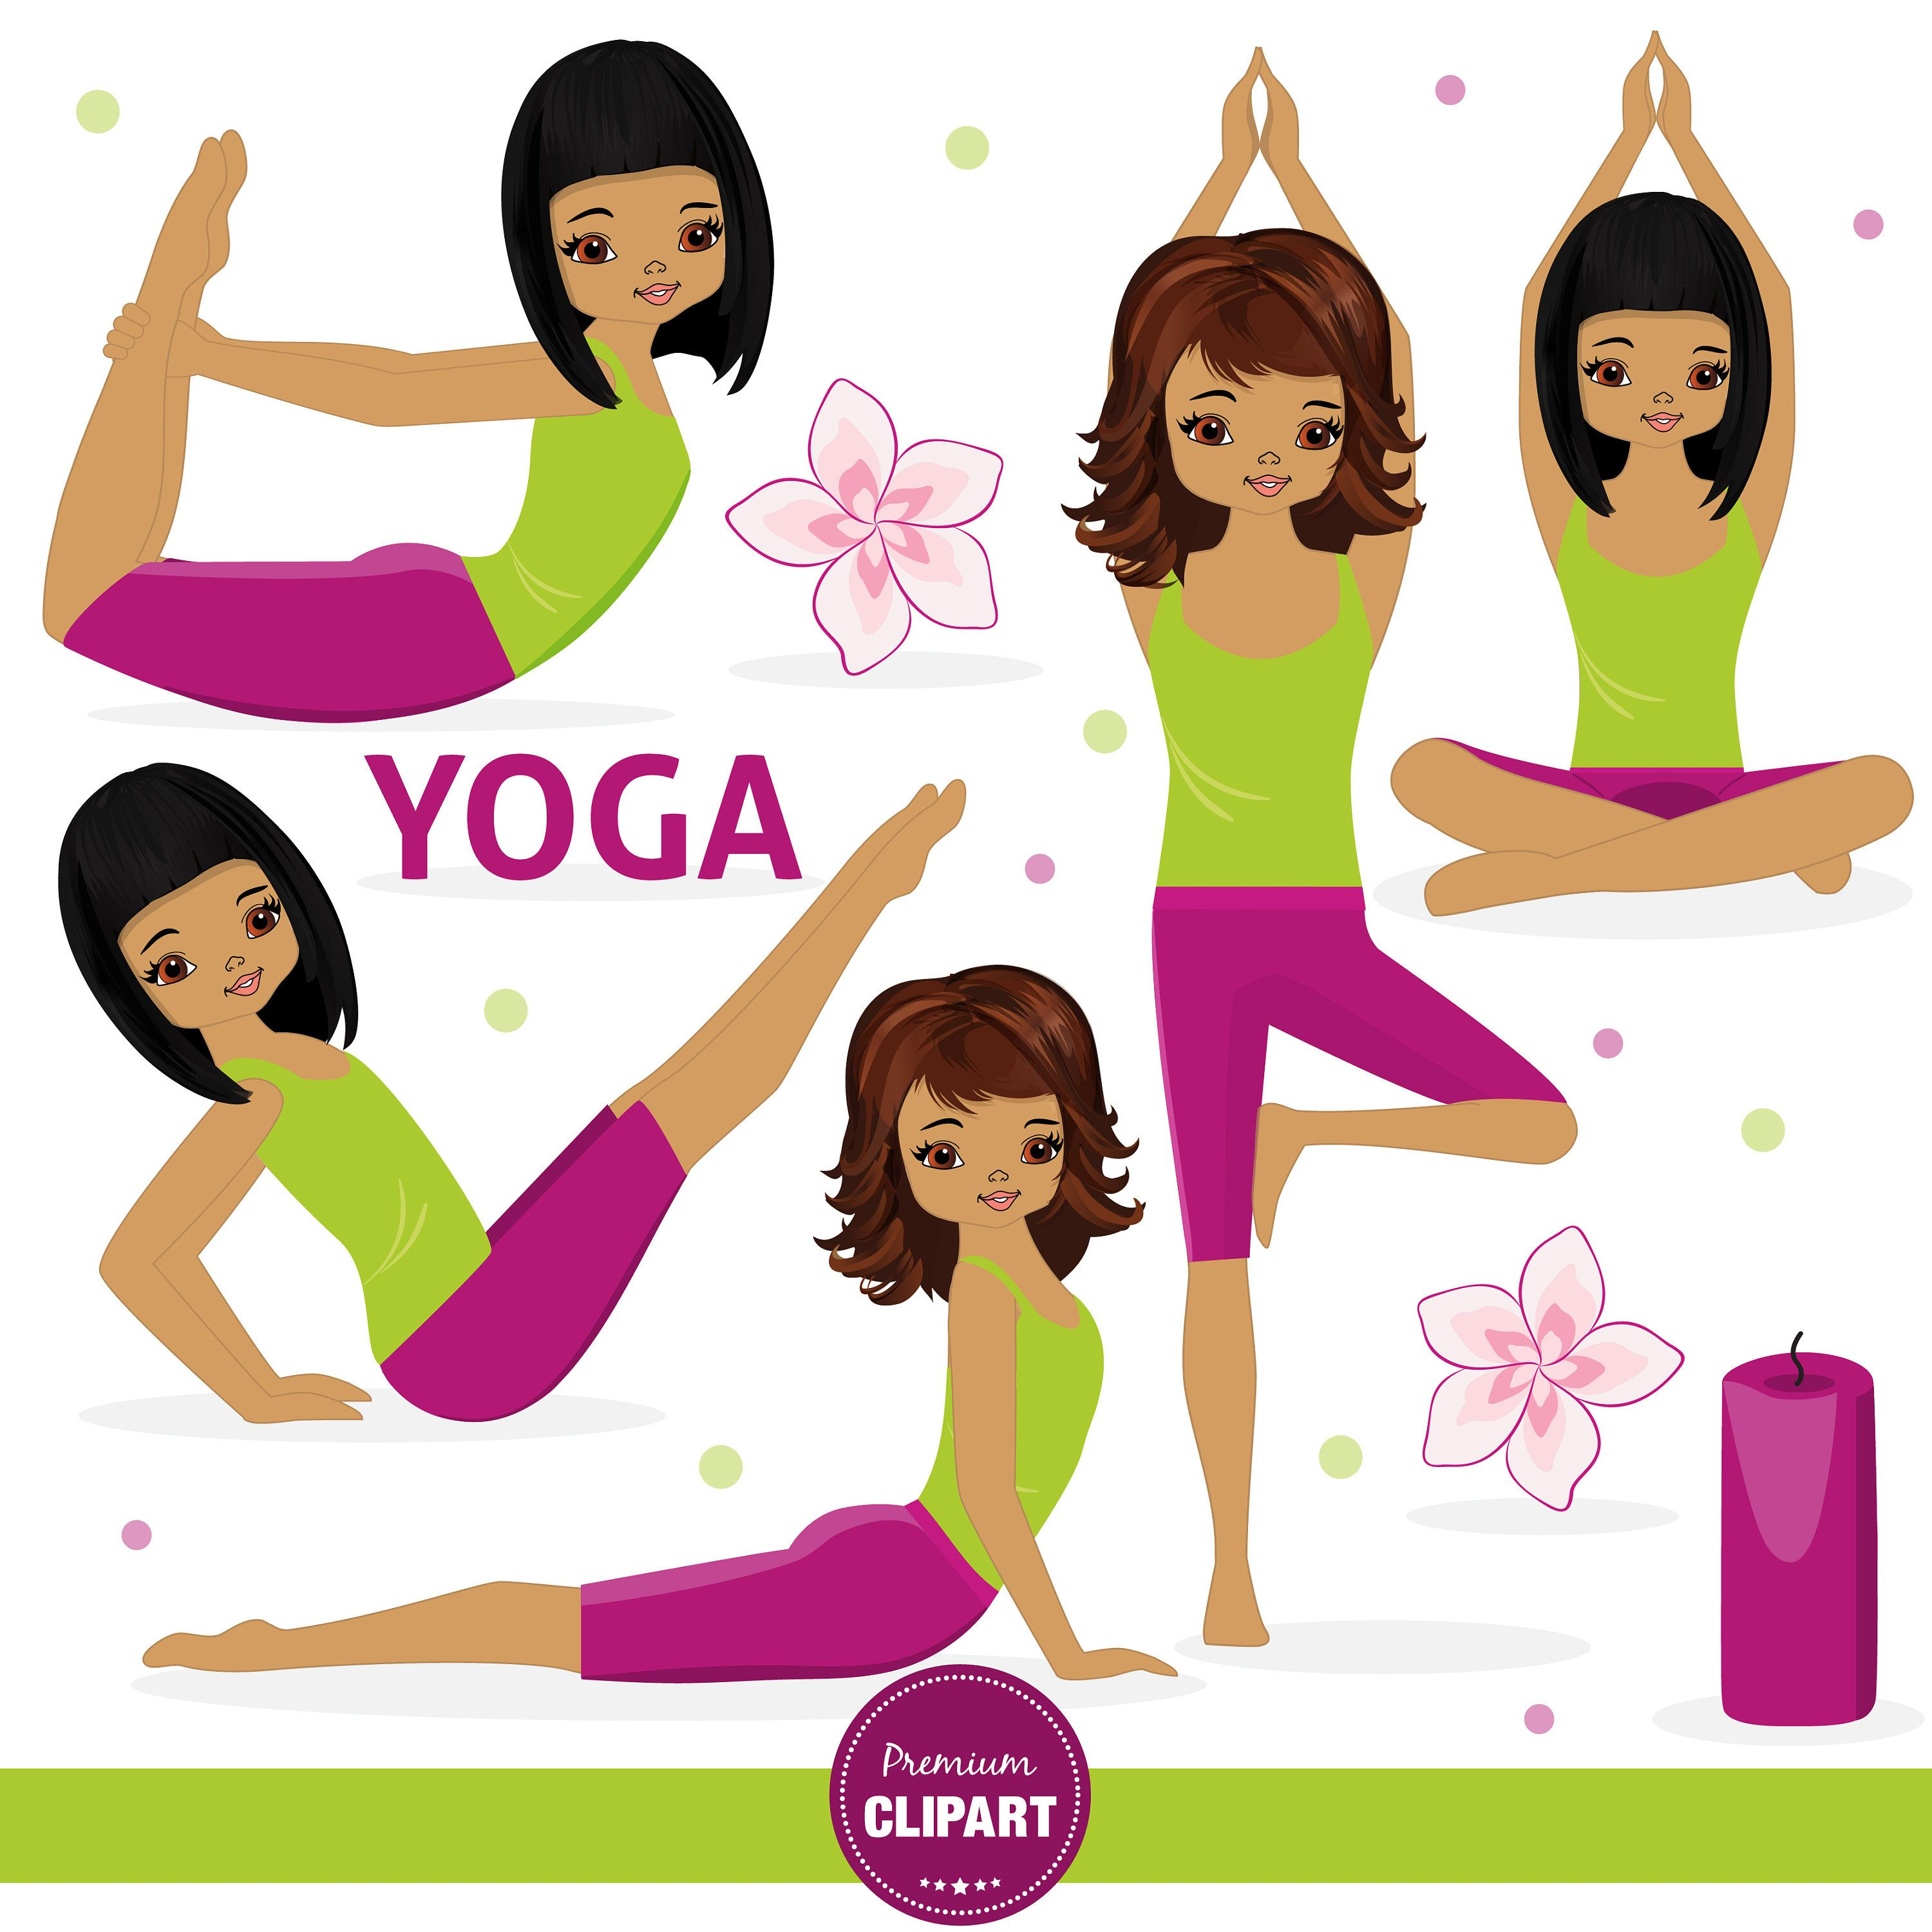 African American Yoga clipart, Yoga images, Girl clipart.